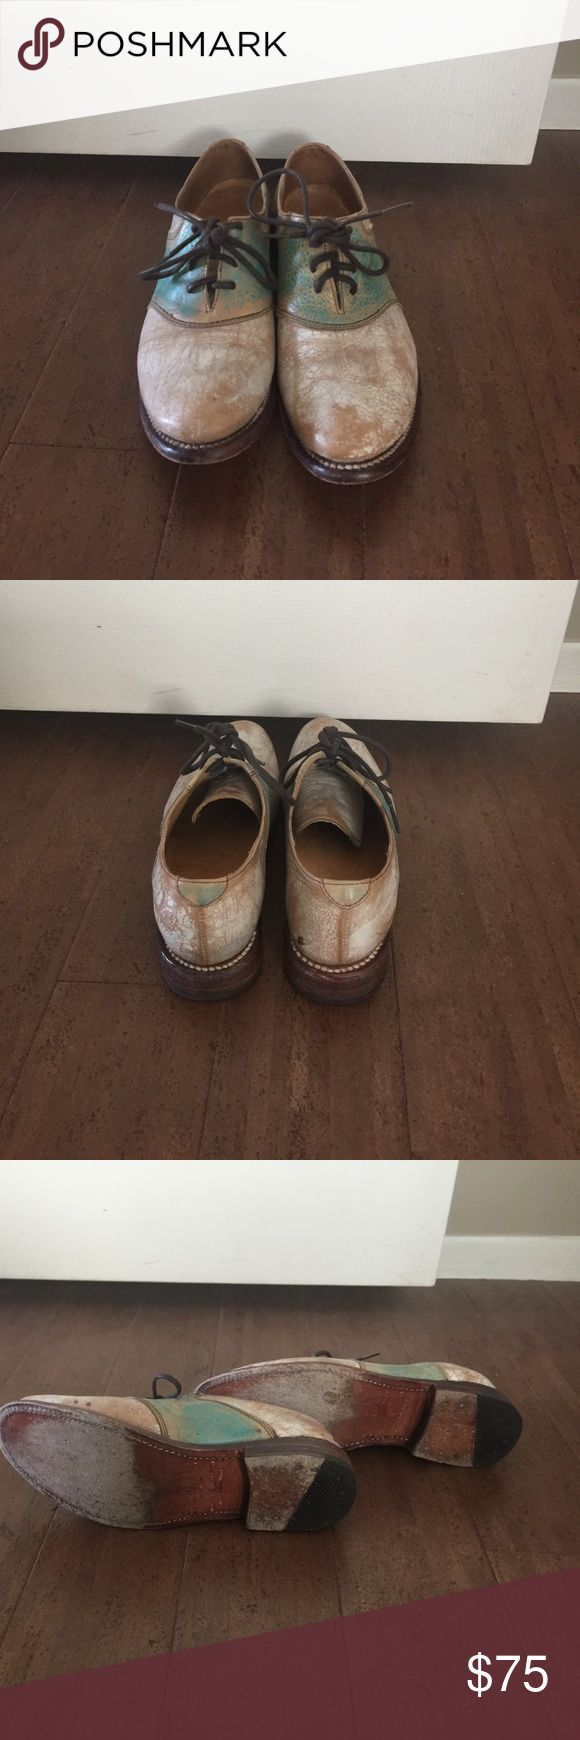 Bed Stu Oxfords These are amazing!!! Bed Stu Oxfords. Used. Leather. Distressed look. Open to offers. Bed Stu Shoes